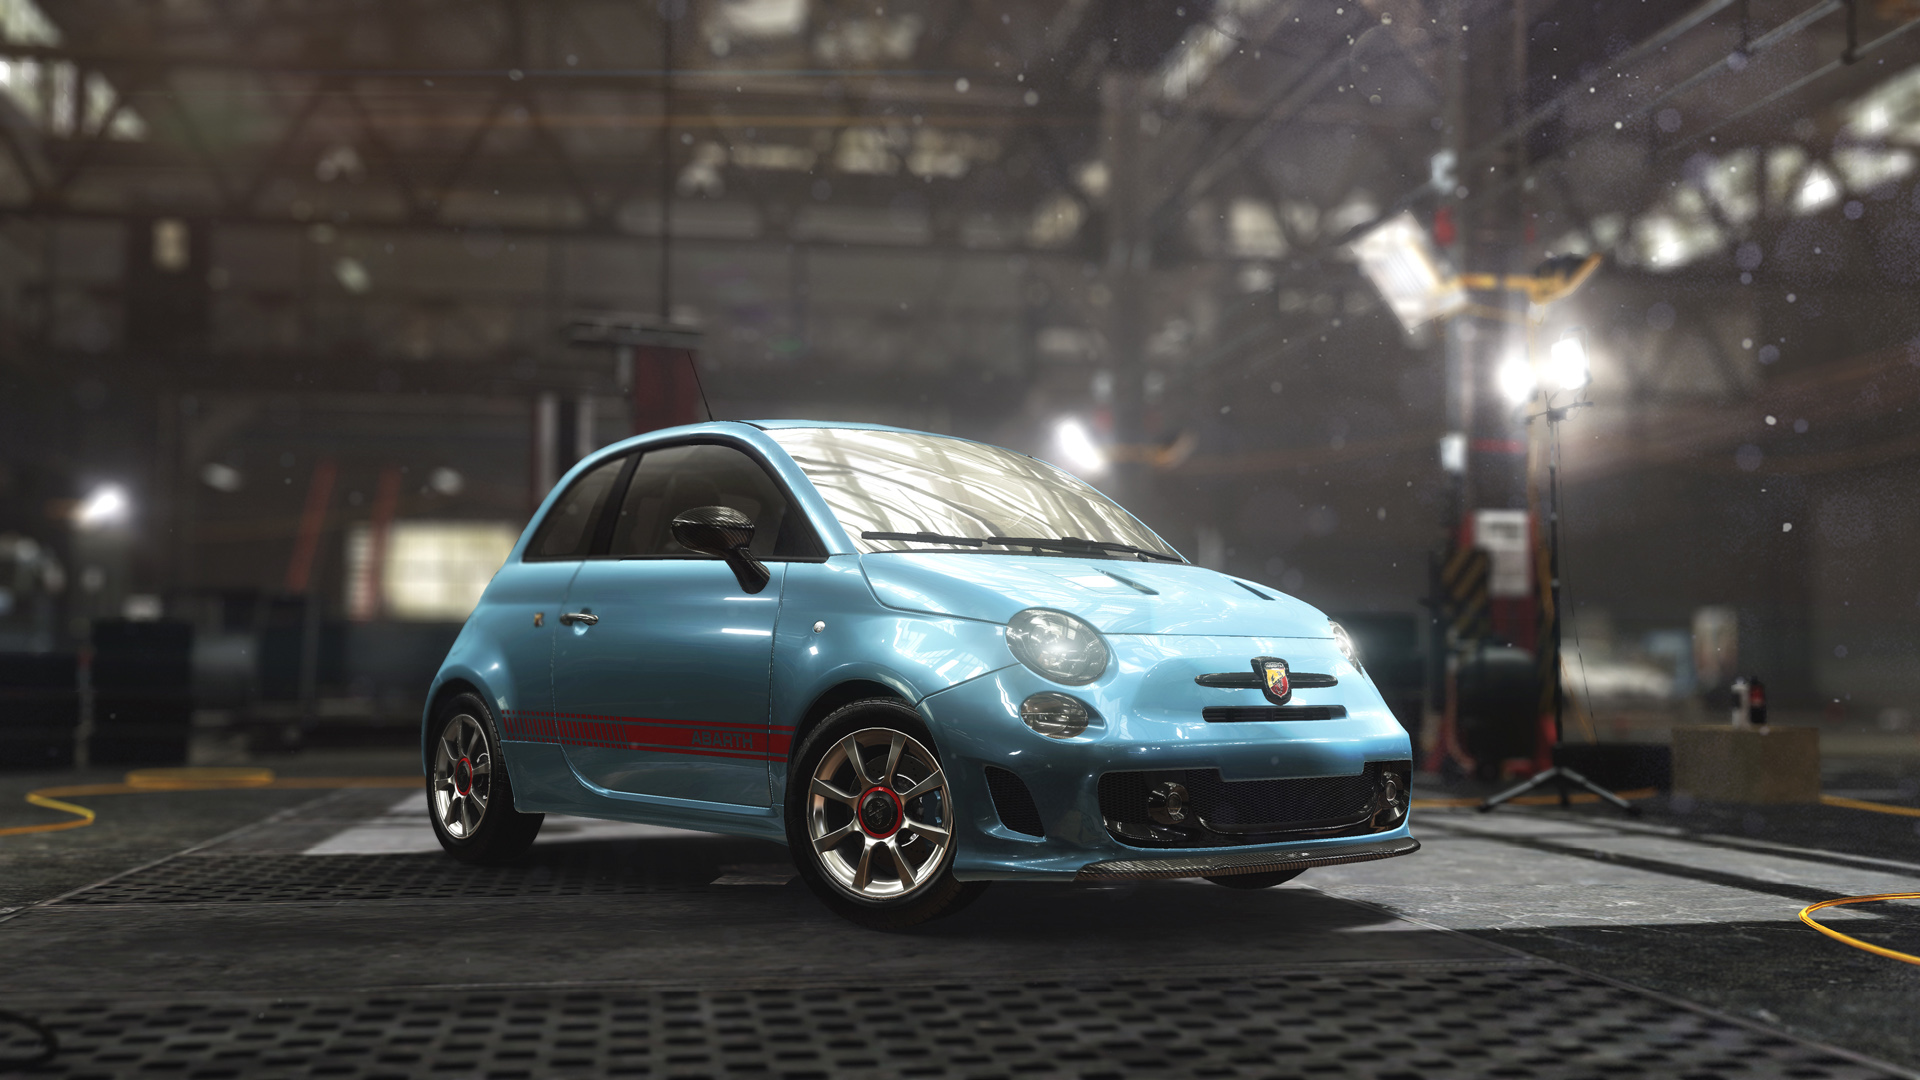 The-Crew-Abarth-500